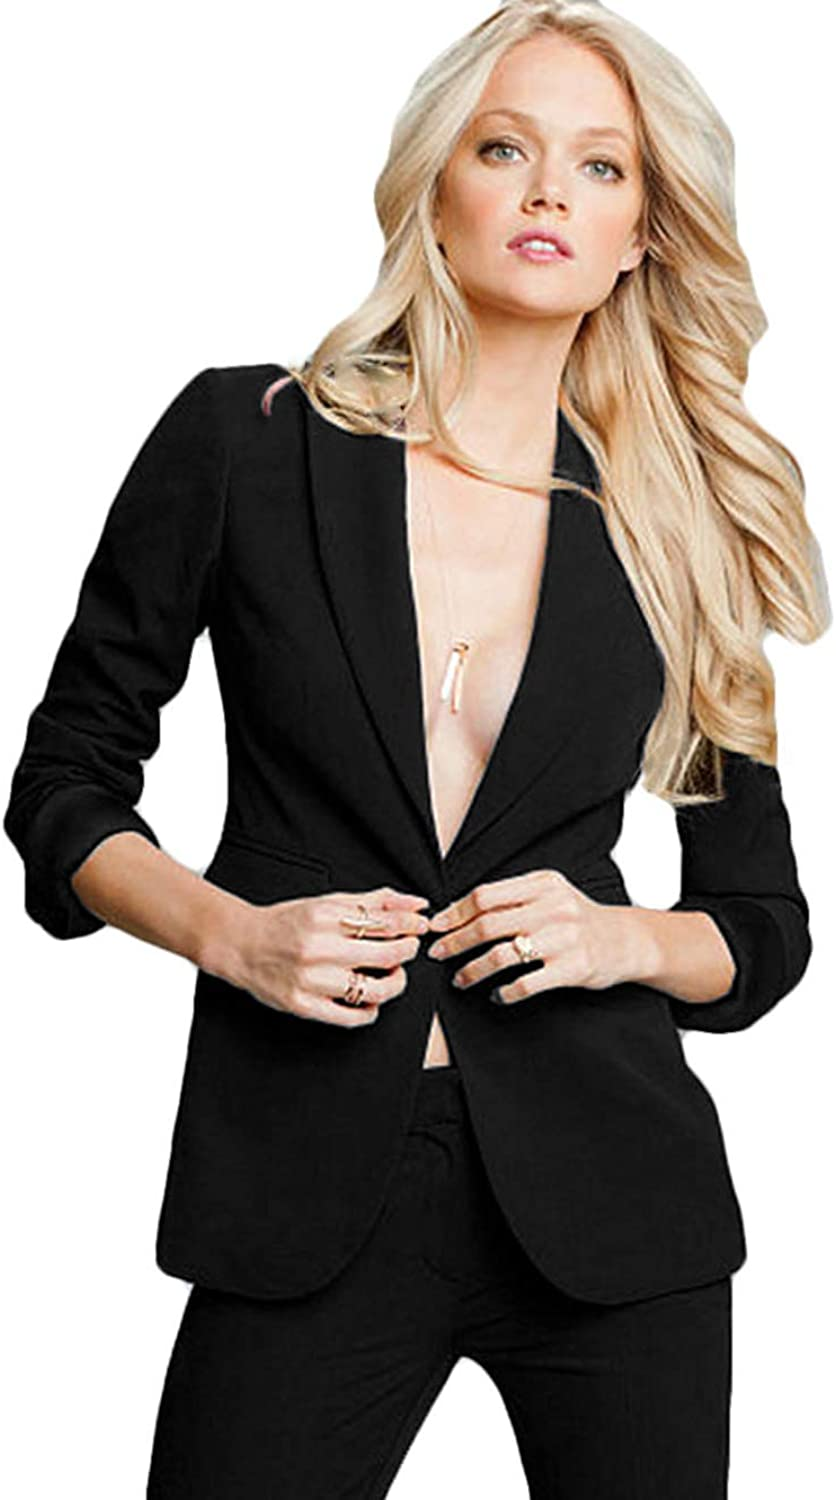 WZW Women's Professional Formal Pantsuits Ladies Business Suits Women Suits 2 Pieces (Jackets+Pants)